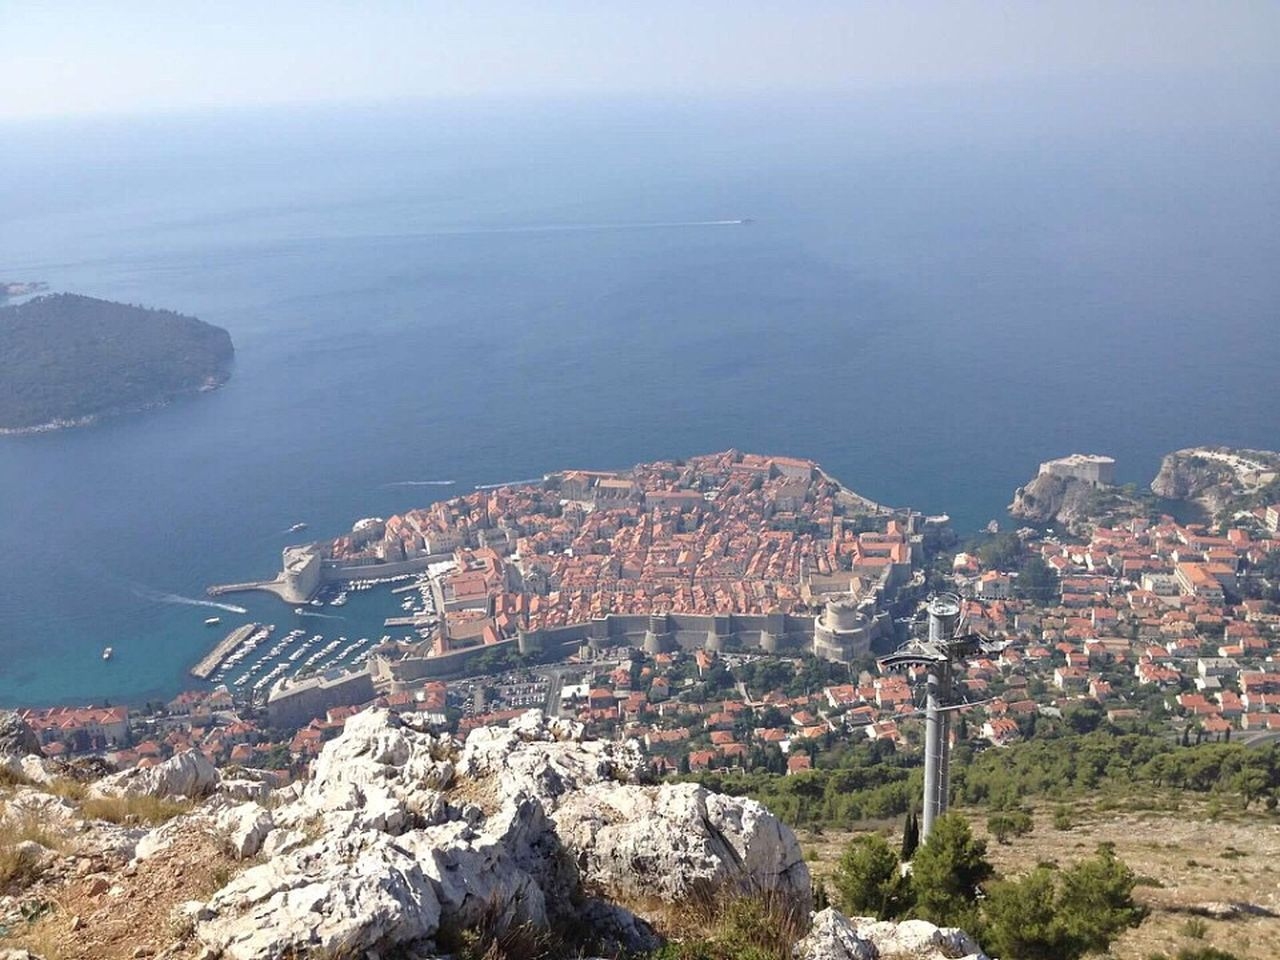 High Angle View Cityscape Building Exterior Architecture Crowded Sea City Dubrovnik Croatia Residential District Built Structure Aerial View Water Residential Building Outdoors Mountain Scenics Day Nature Sky Scenic Lookout Beauty In Nature